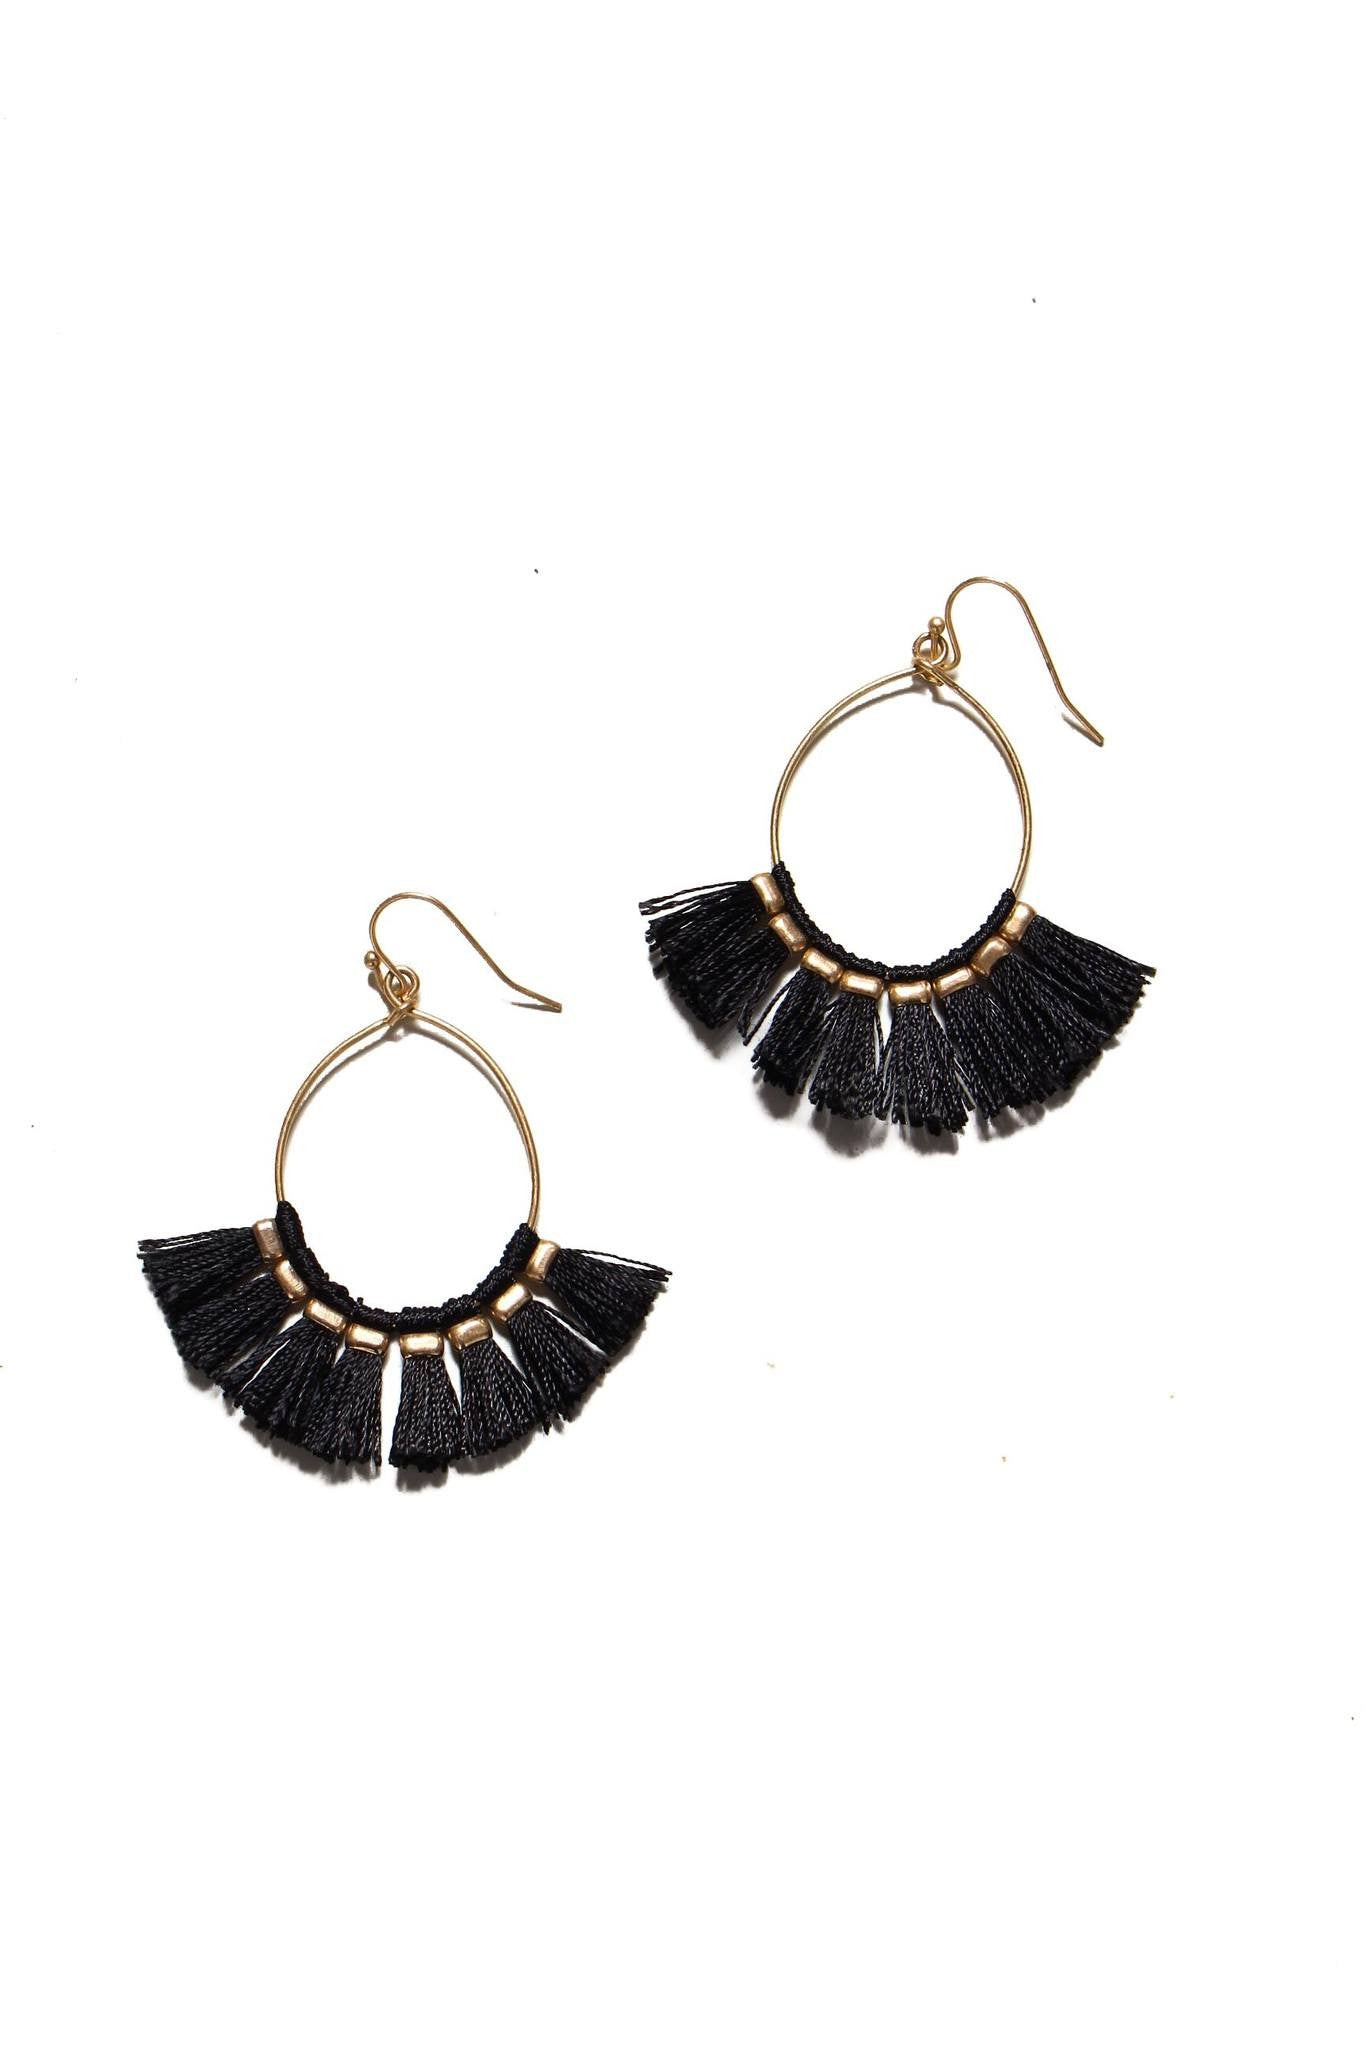 About Town Fringe Earrings - Black